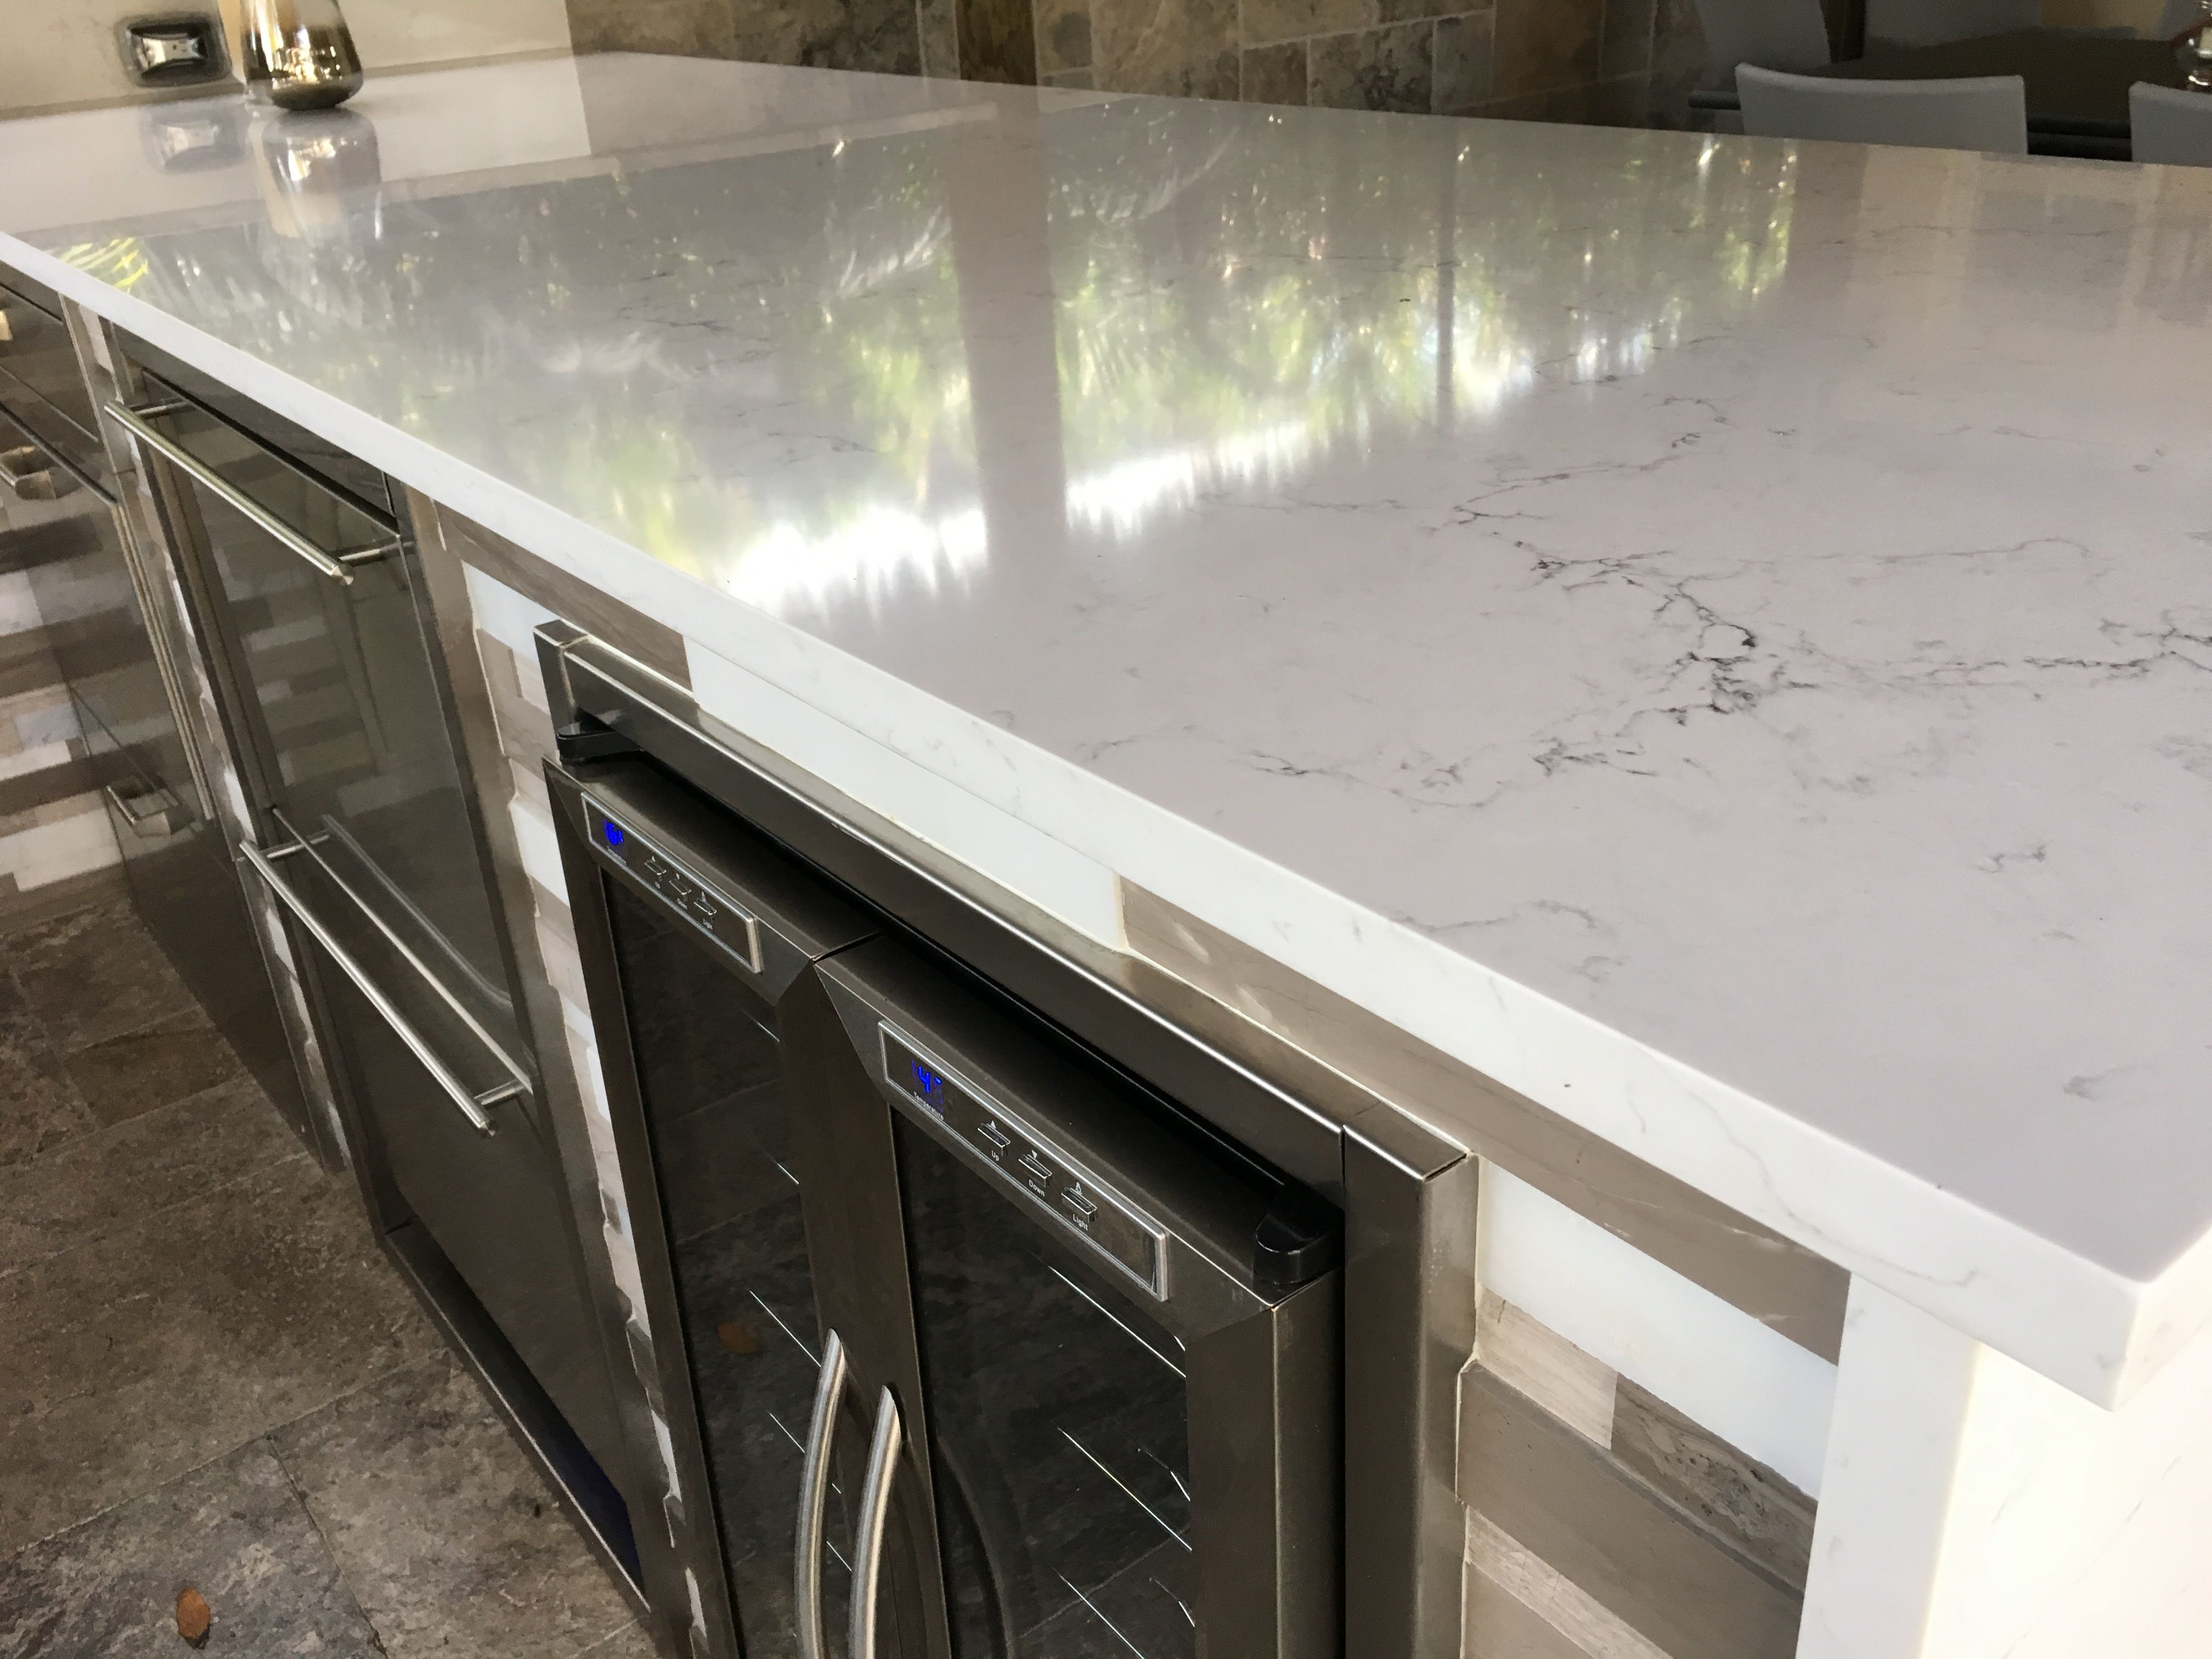 This is a beautiful outdoor kitchen. Calacatta quartz is a excellent accent to this outdoor kitchen. We fabricated and installed this quartz countertops and waterfall. This was in Boca Raton Fl.  Visit www.stoneandquartzsurfaces.  and then gallery - outdoor kitchens.